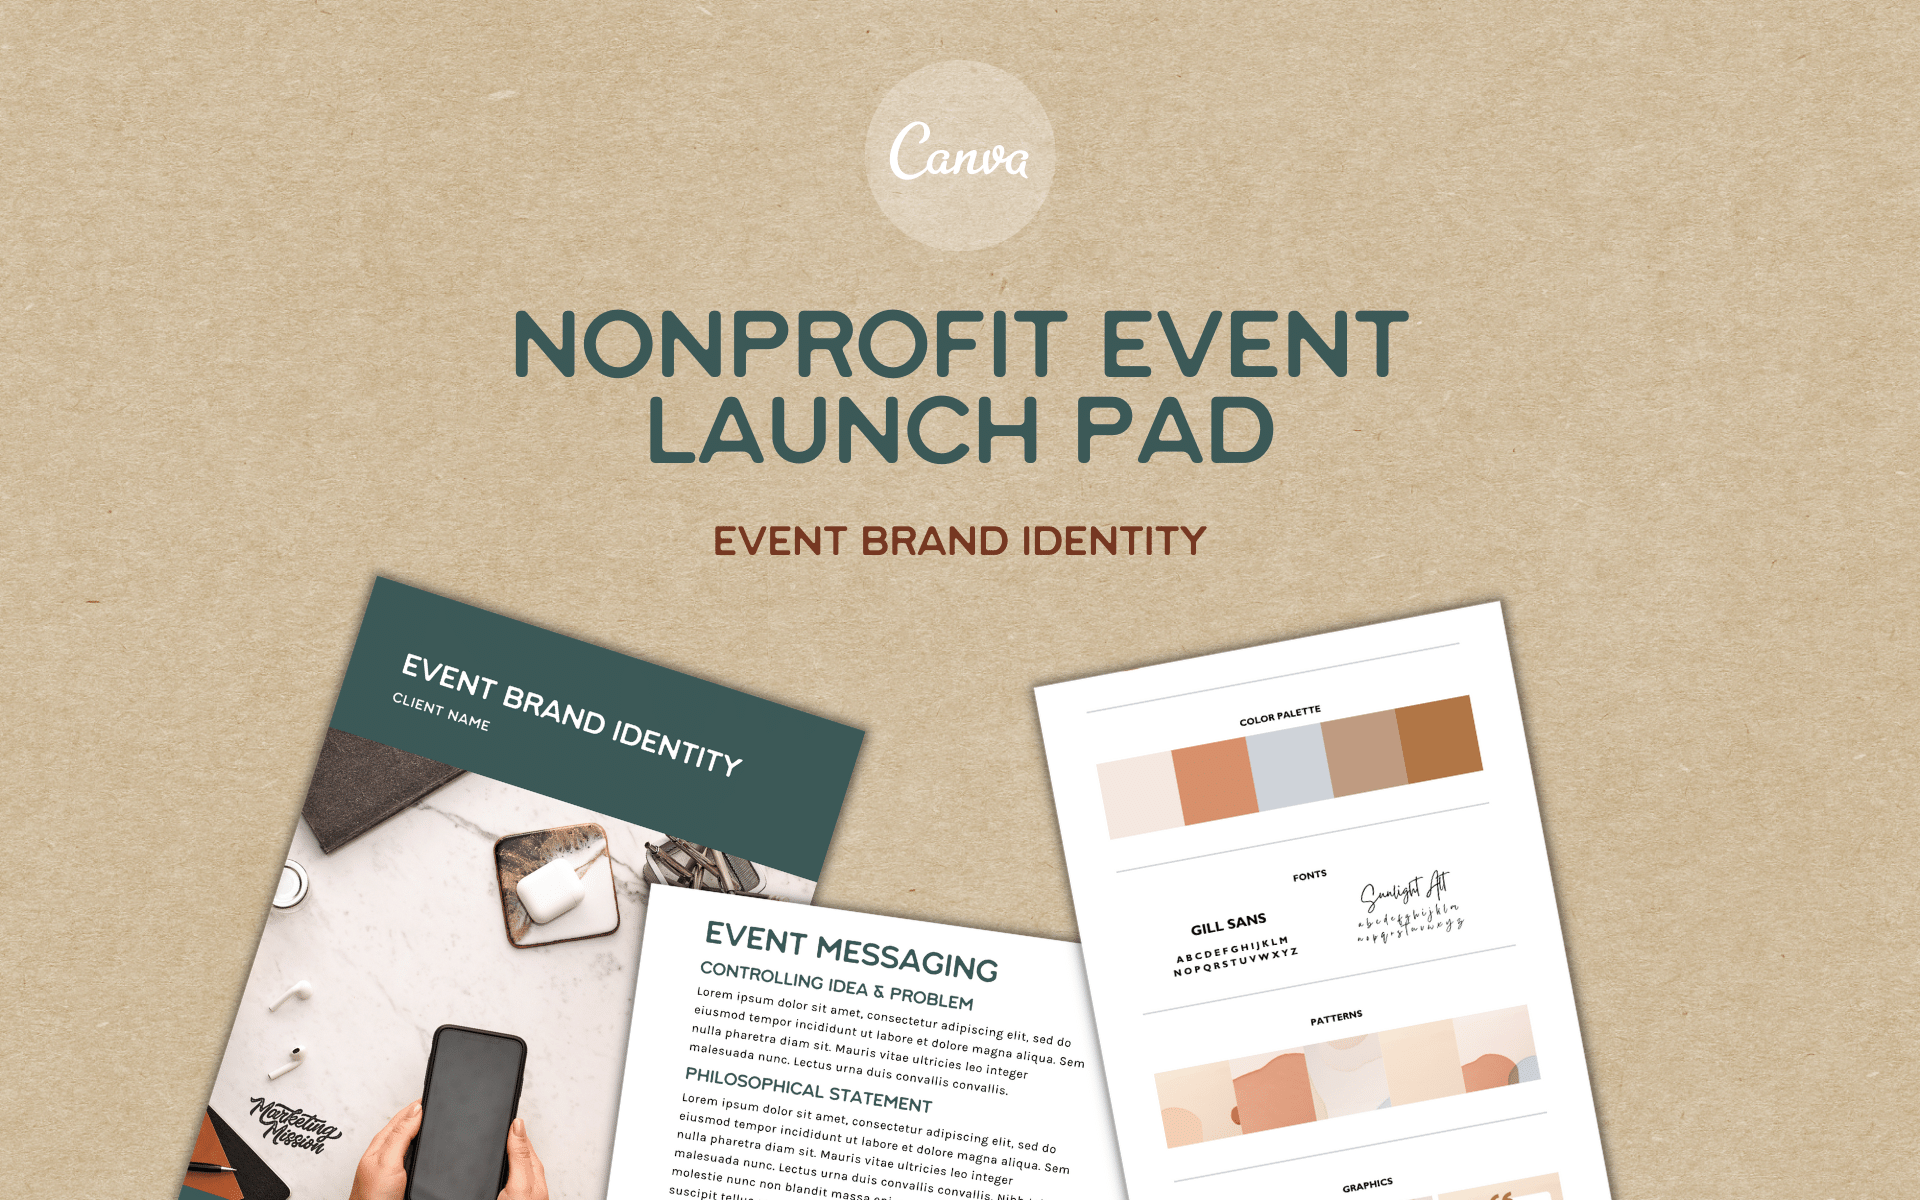 nonprofit event launch pad. Canva template for event brand identity.